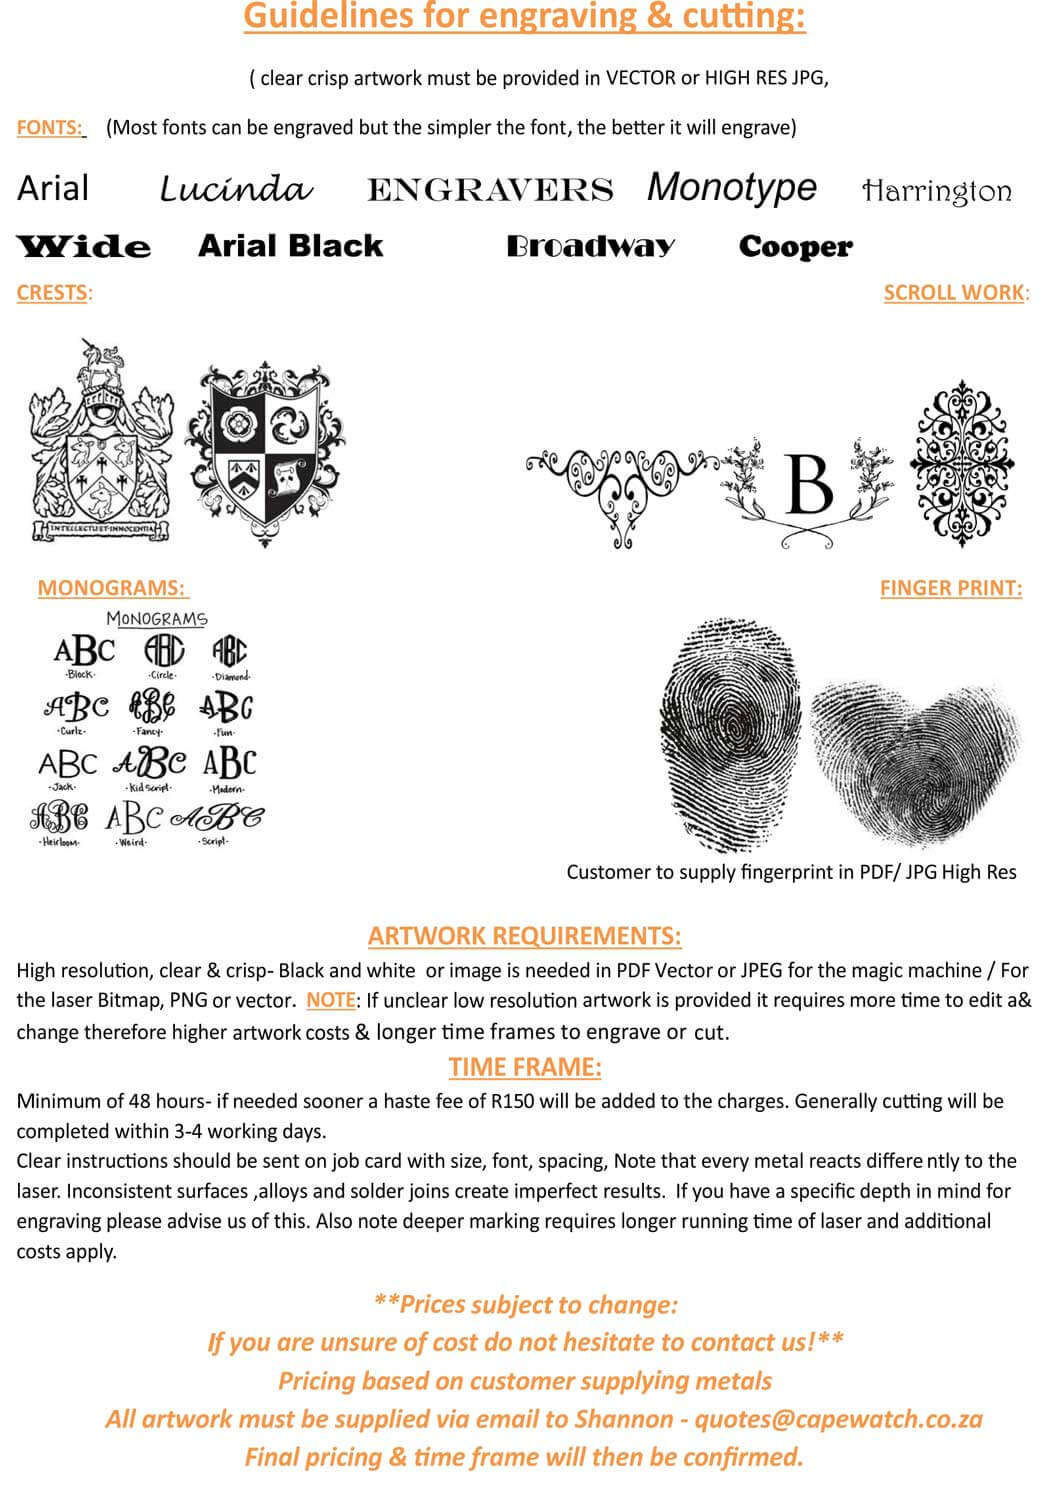 Guideline for engraving & cutting